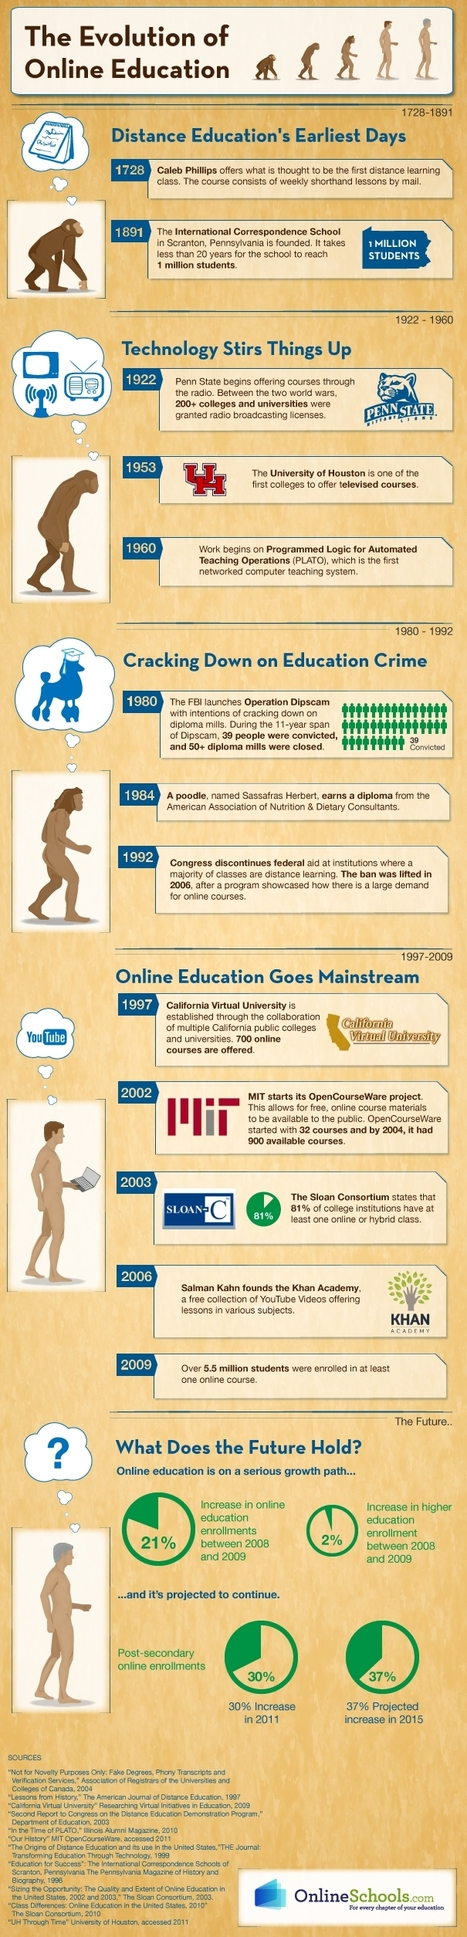 Did You Know? Distance Education Has Been Around Since 1728 | E-Learning and Online Teaching | Scoop.it